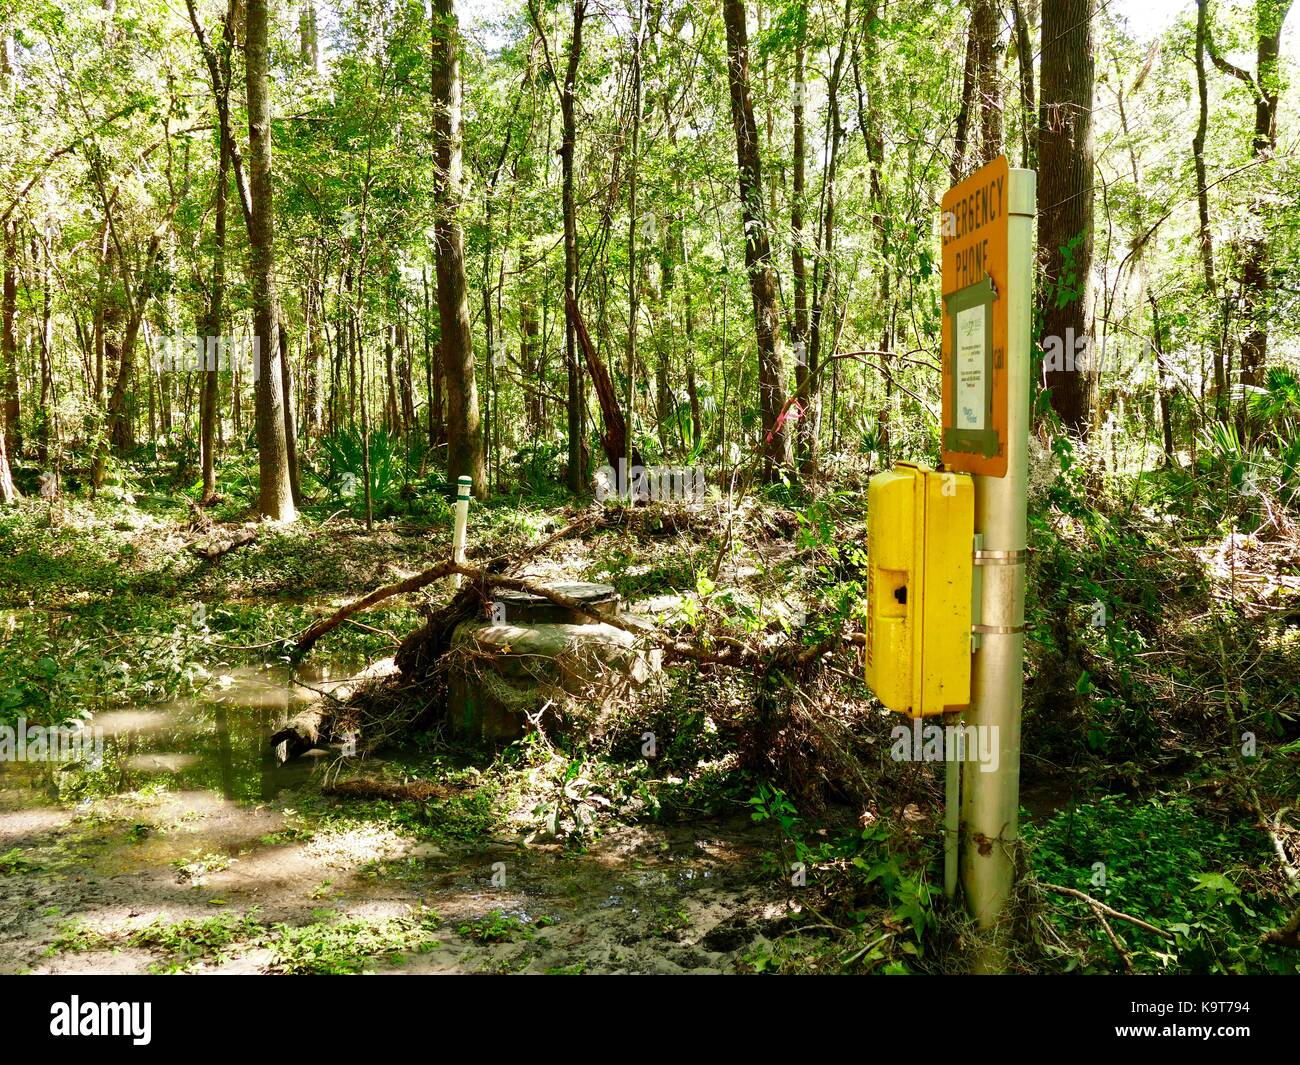 Emergency call box, telephone box, along flooded path in middle of urban forest. Gainesville, Florida, USA. - Stock Image